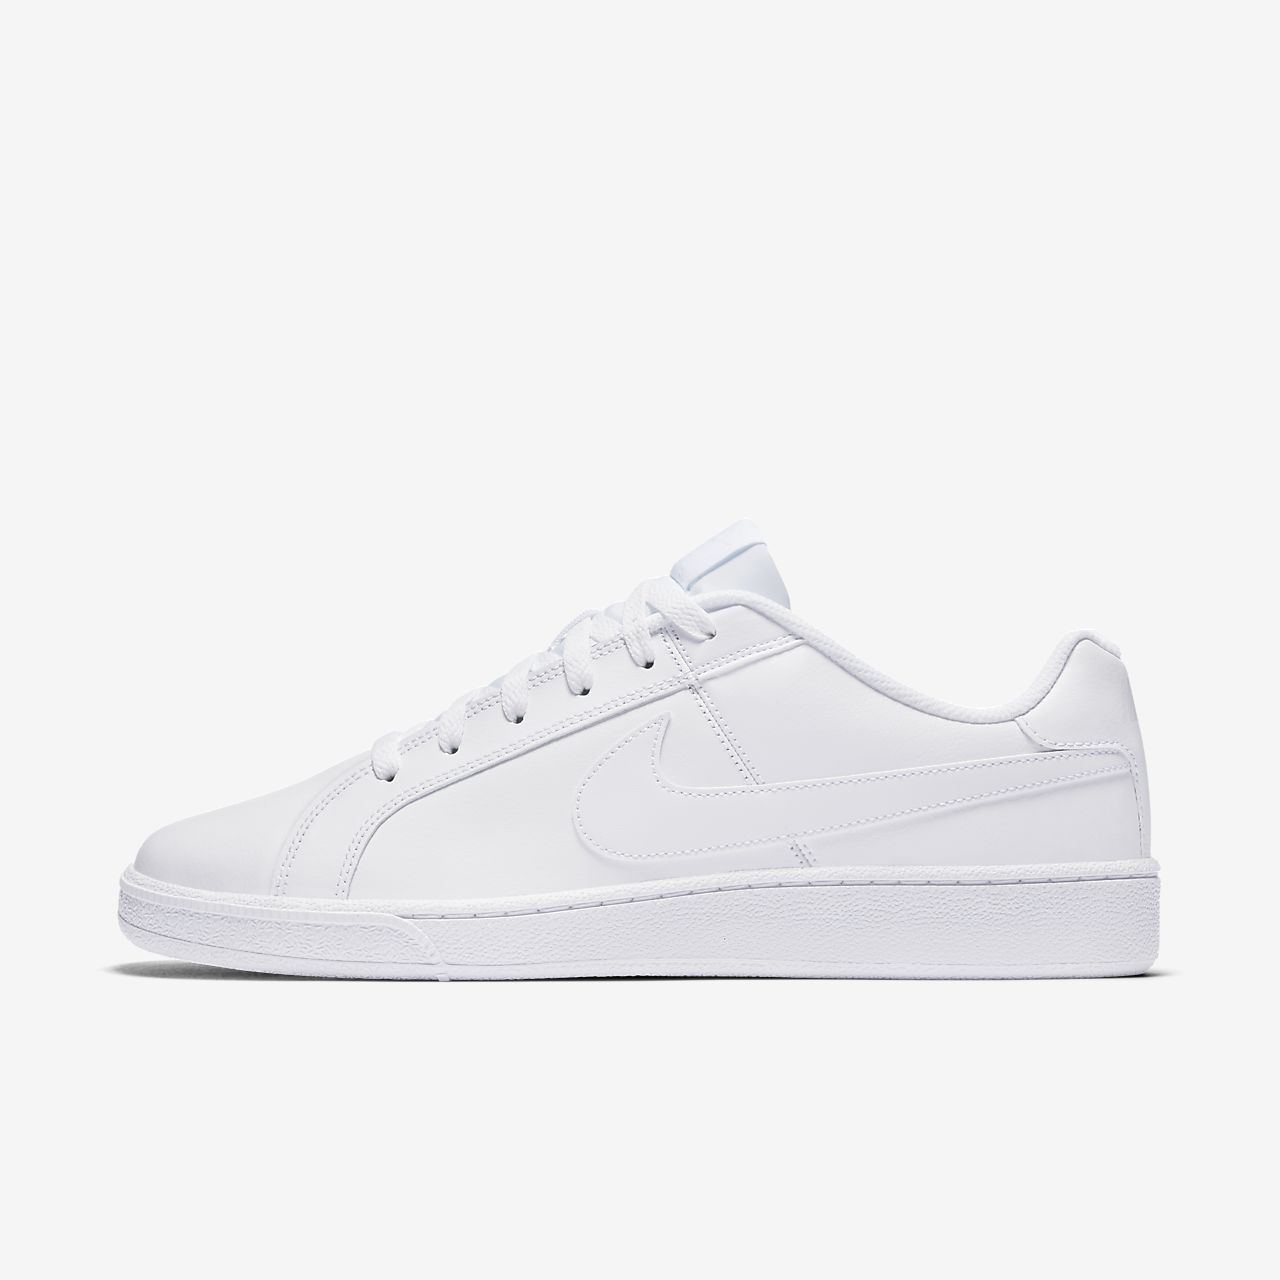 Chaussure Pour Royale Court Nike Homme uPOiXZTk